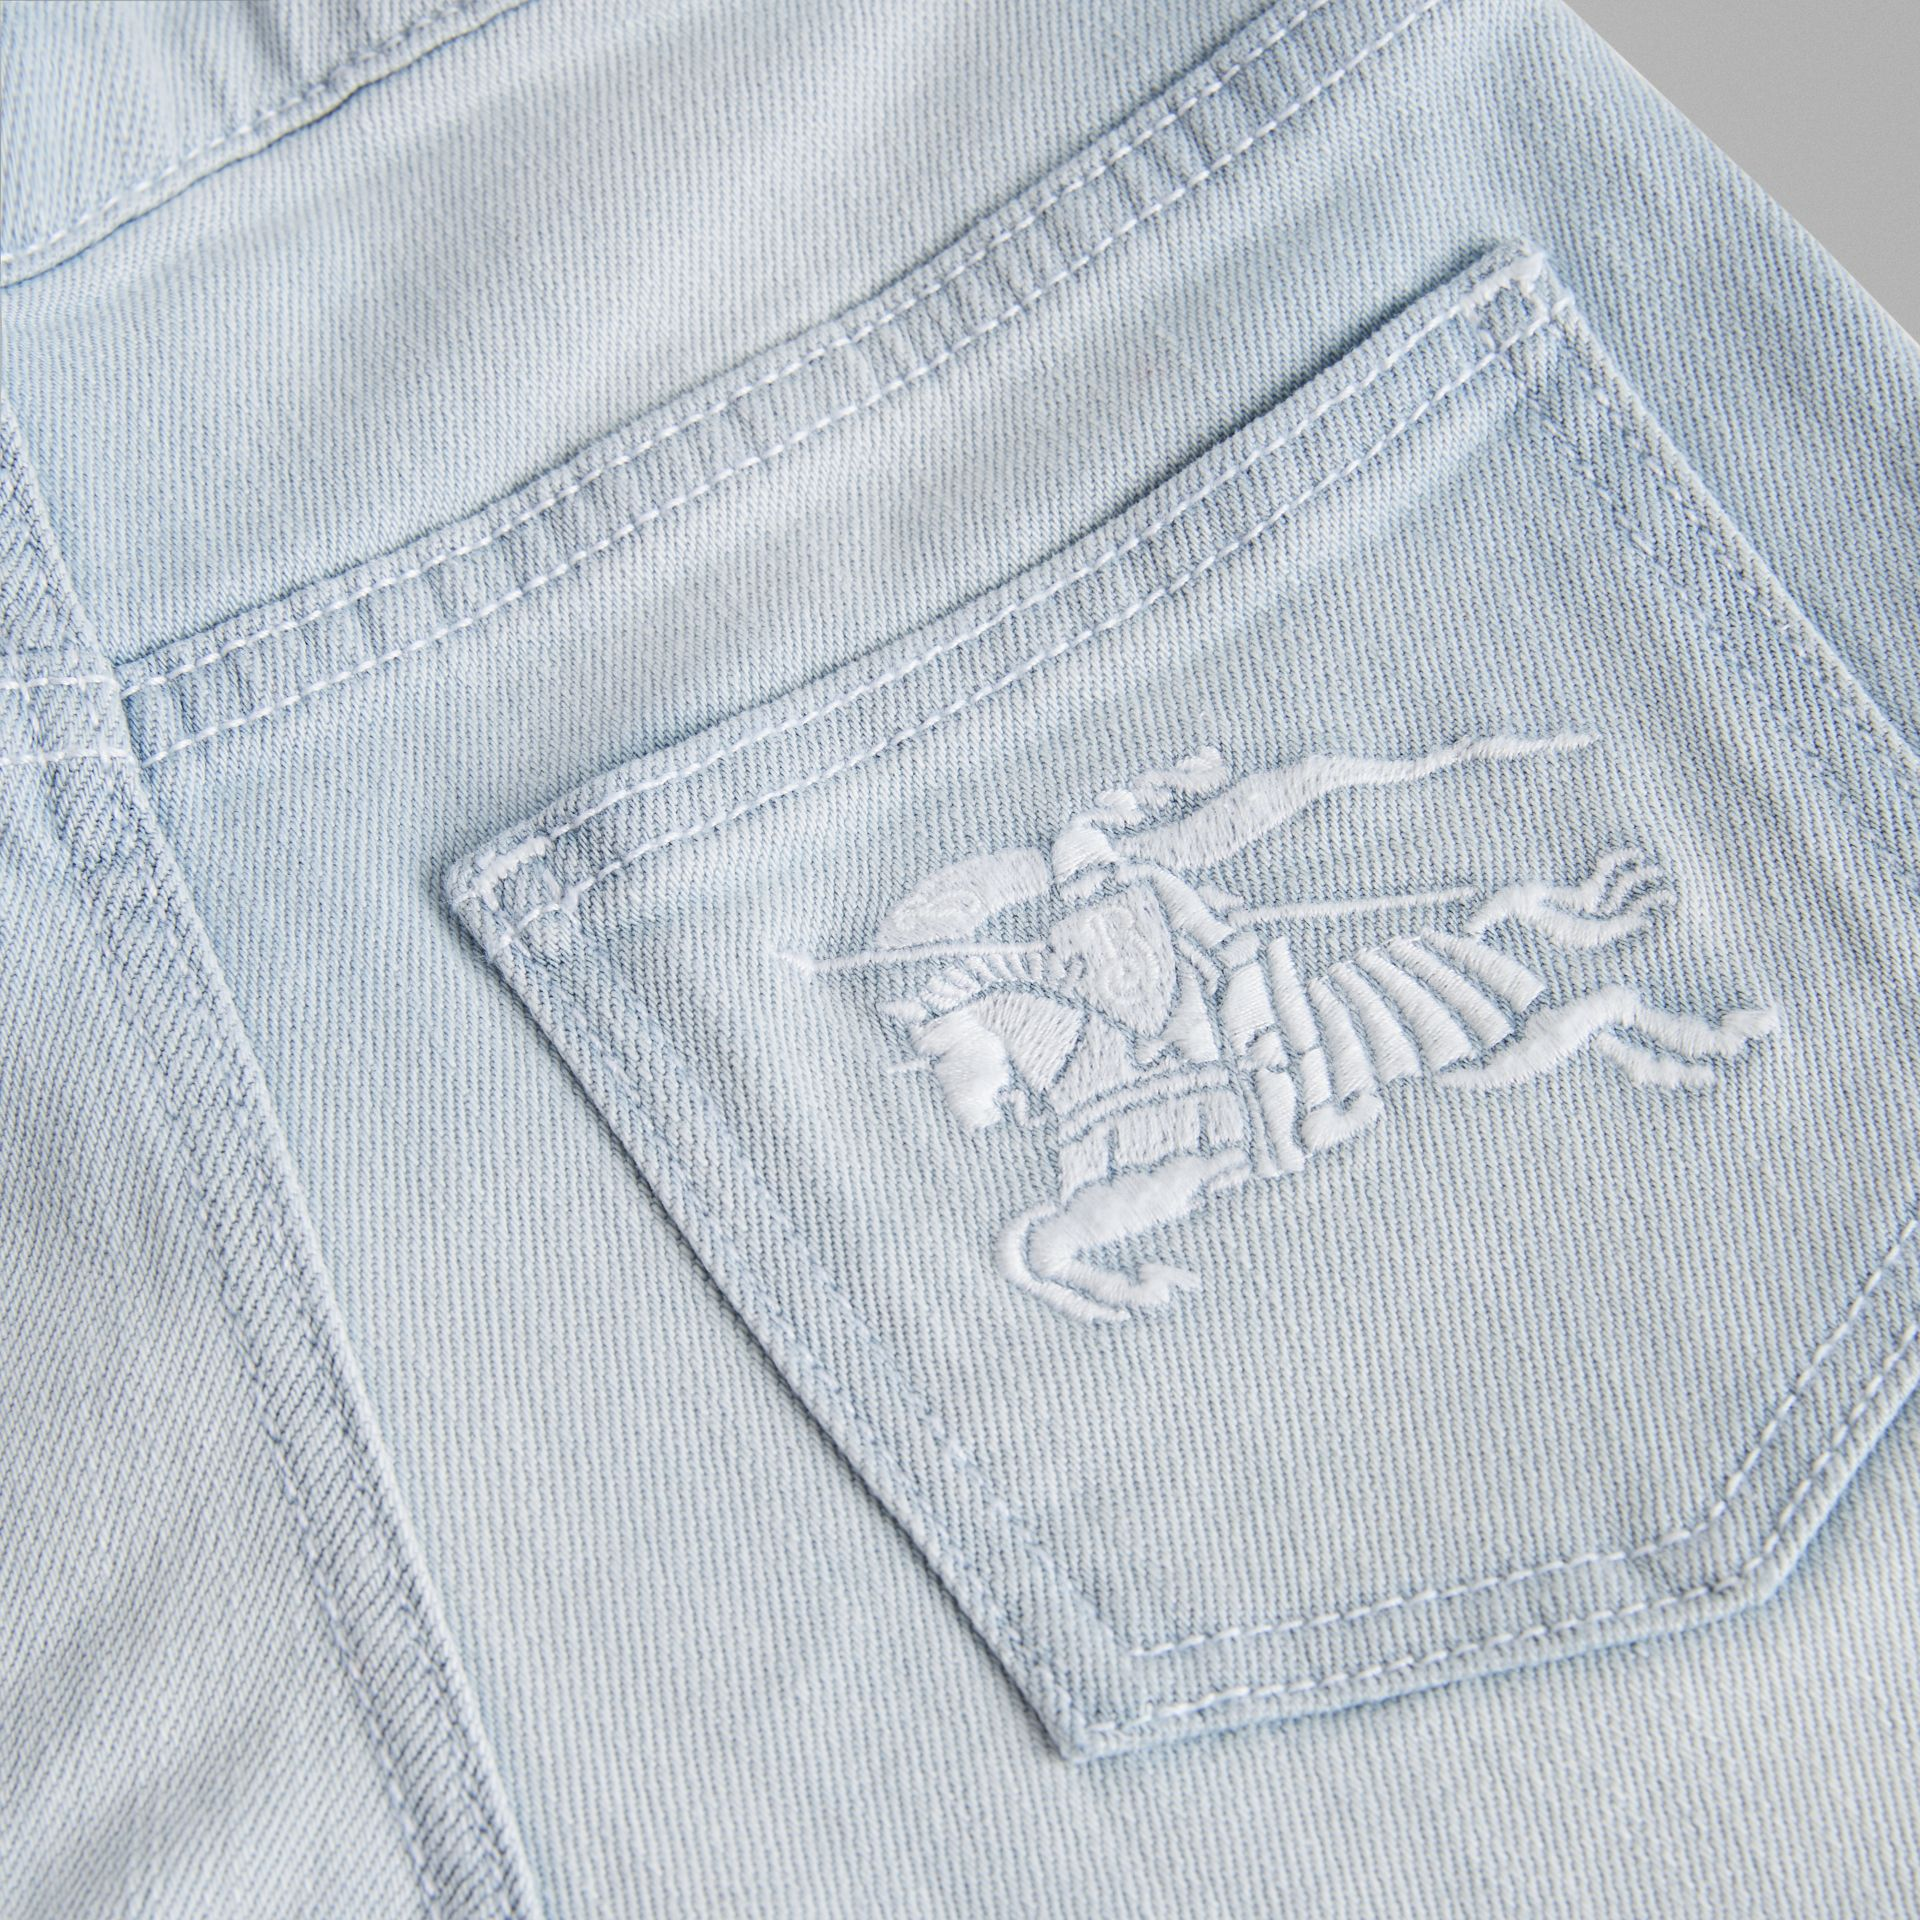 Relaxed Fit Bleached Jeans in Light Blue | Burberry Singapore - gallery image 1